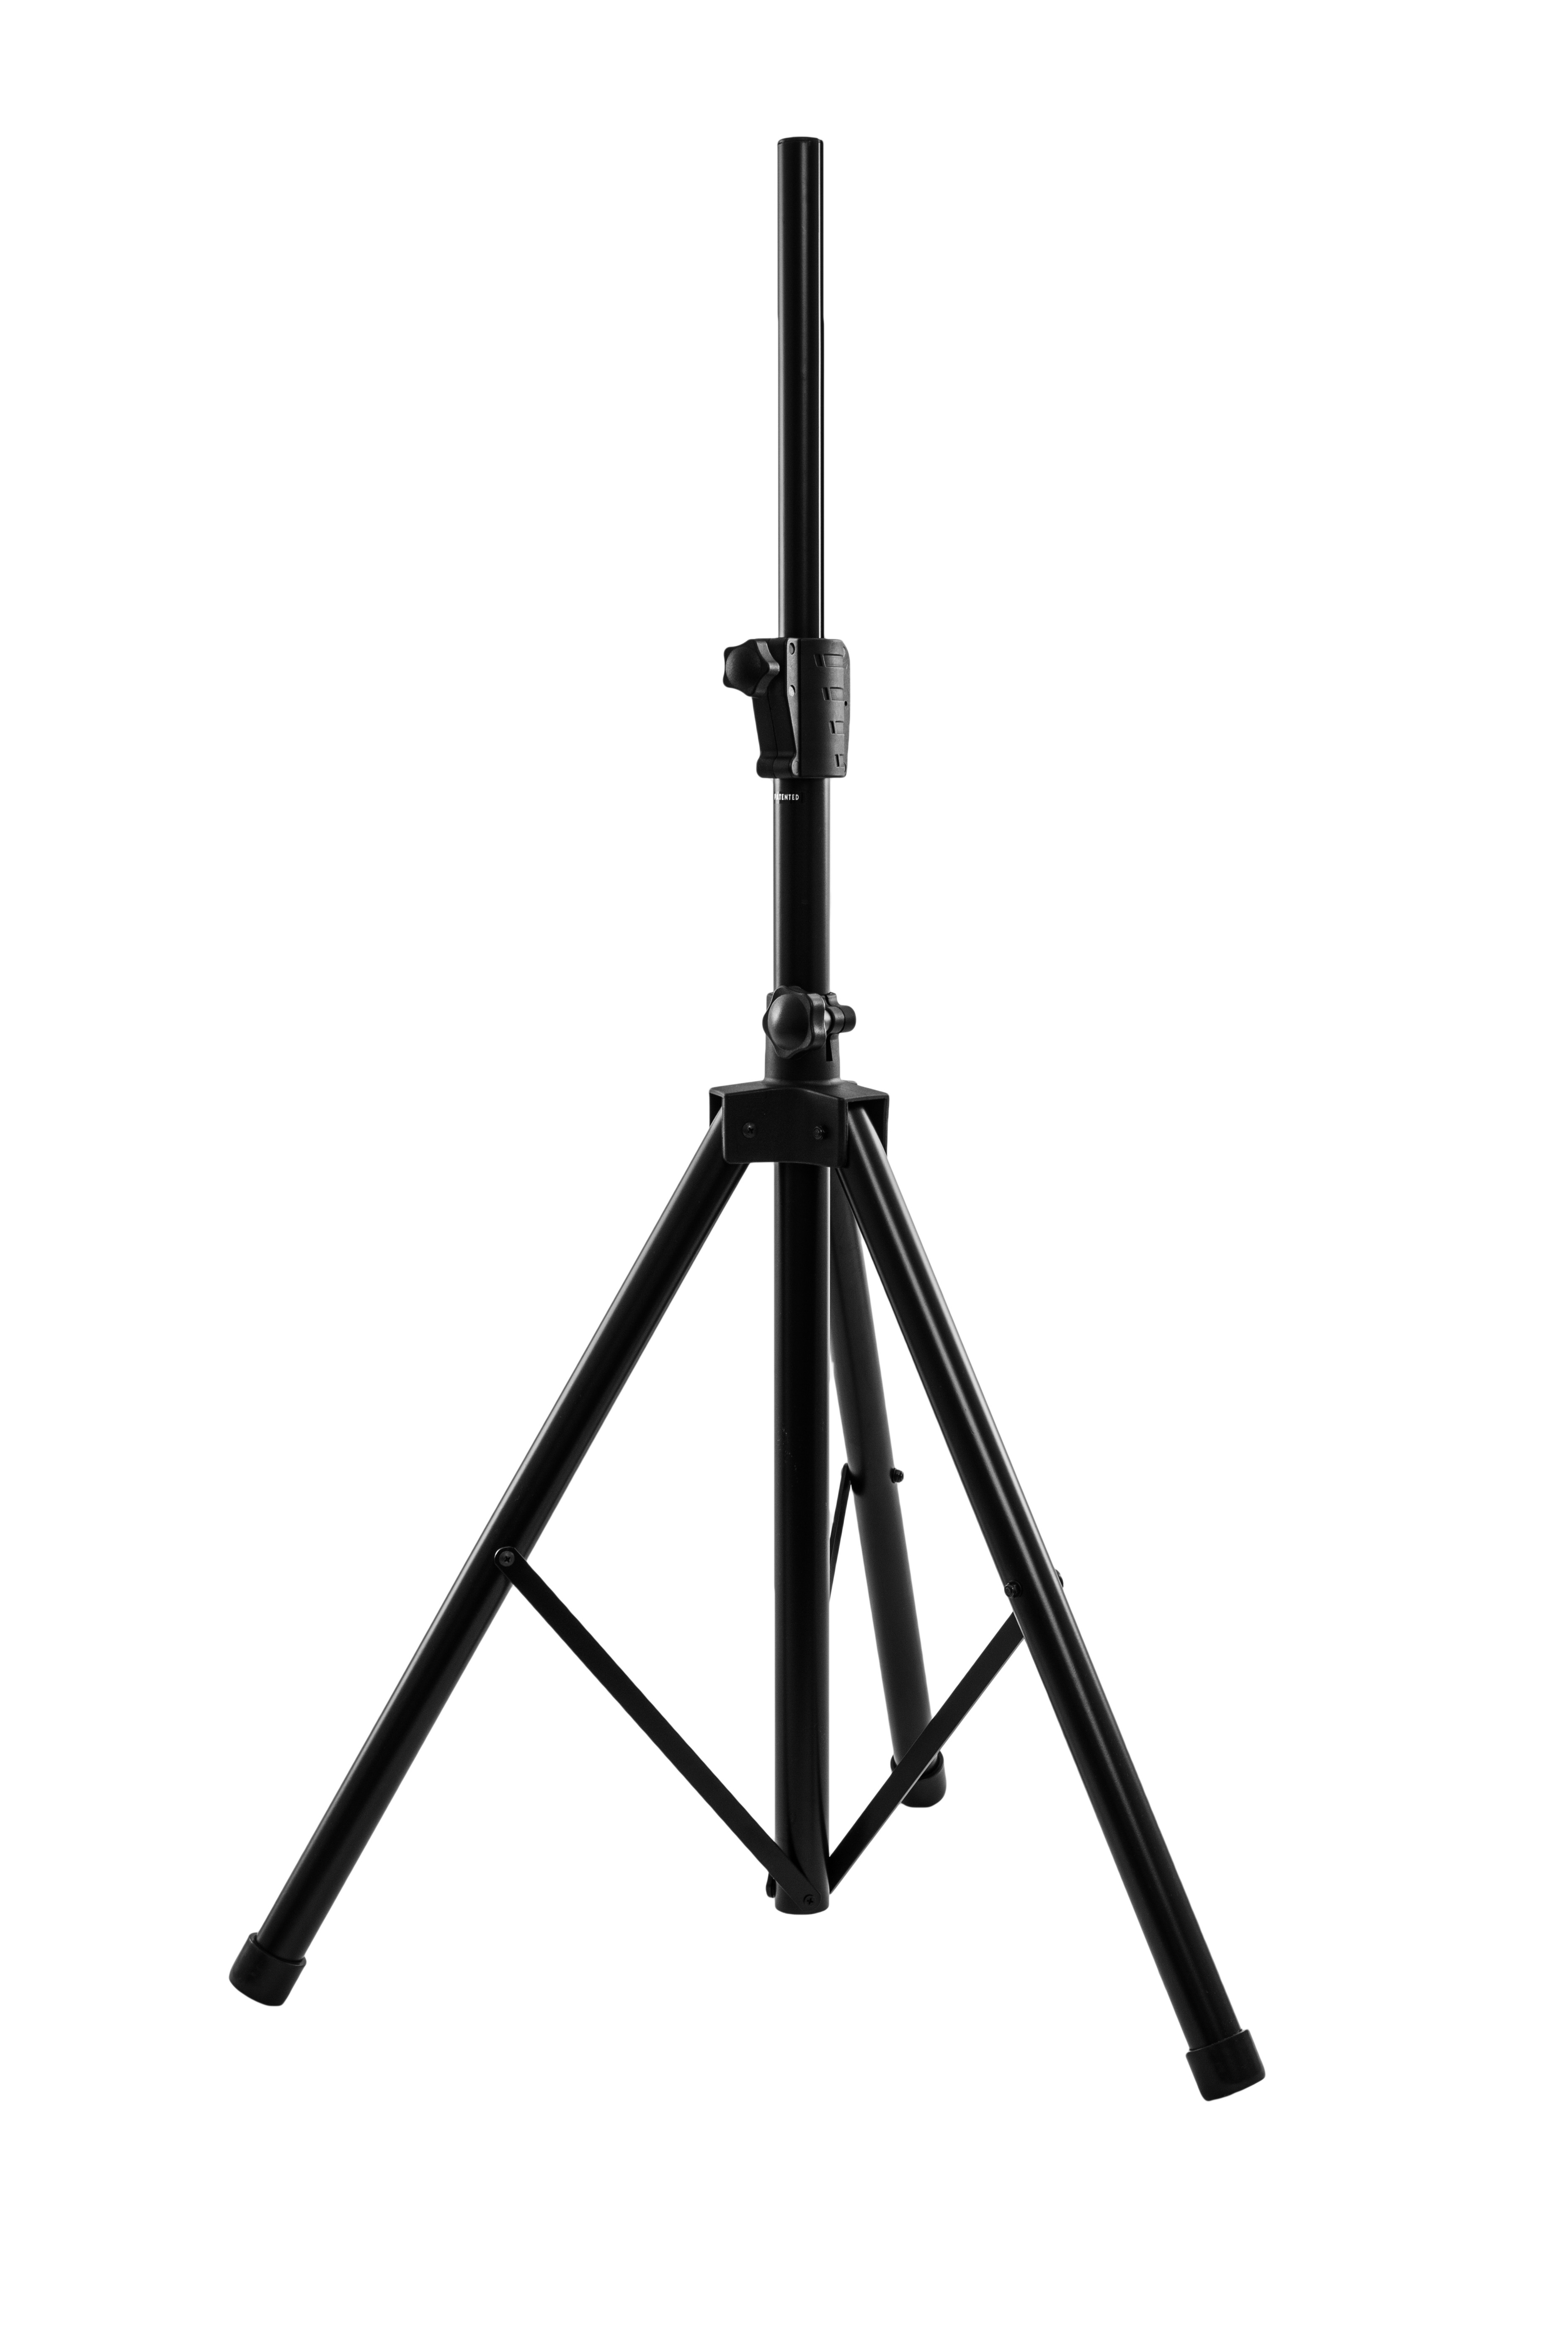 Nomad NSS-8601 Pneumatic Speaker Stand